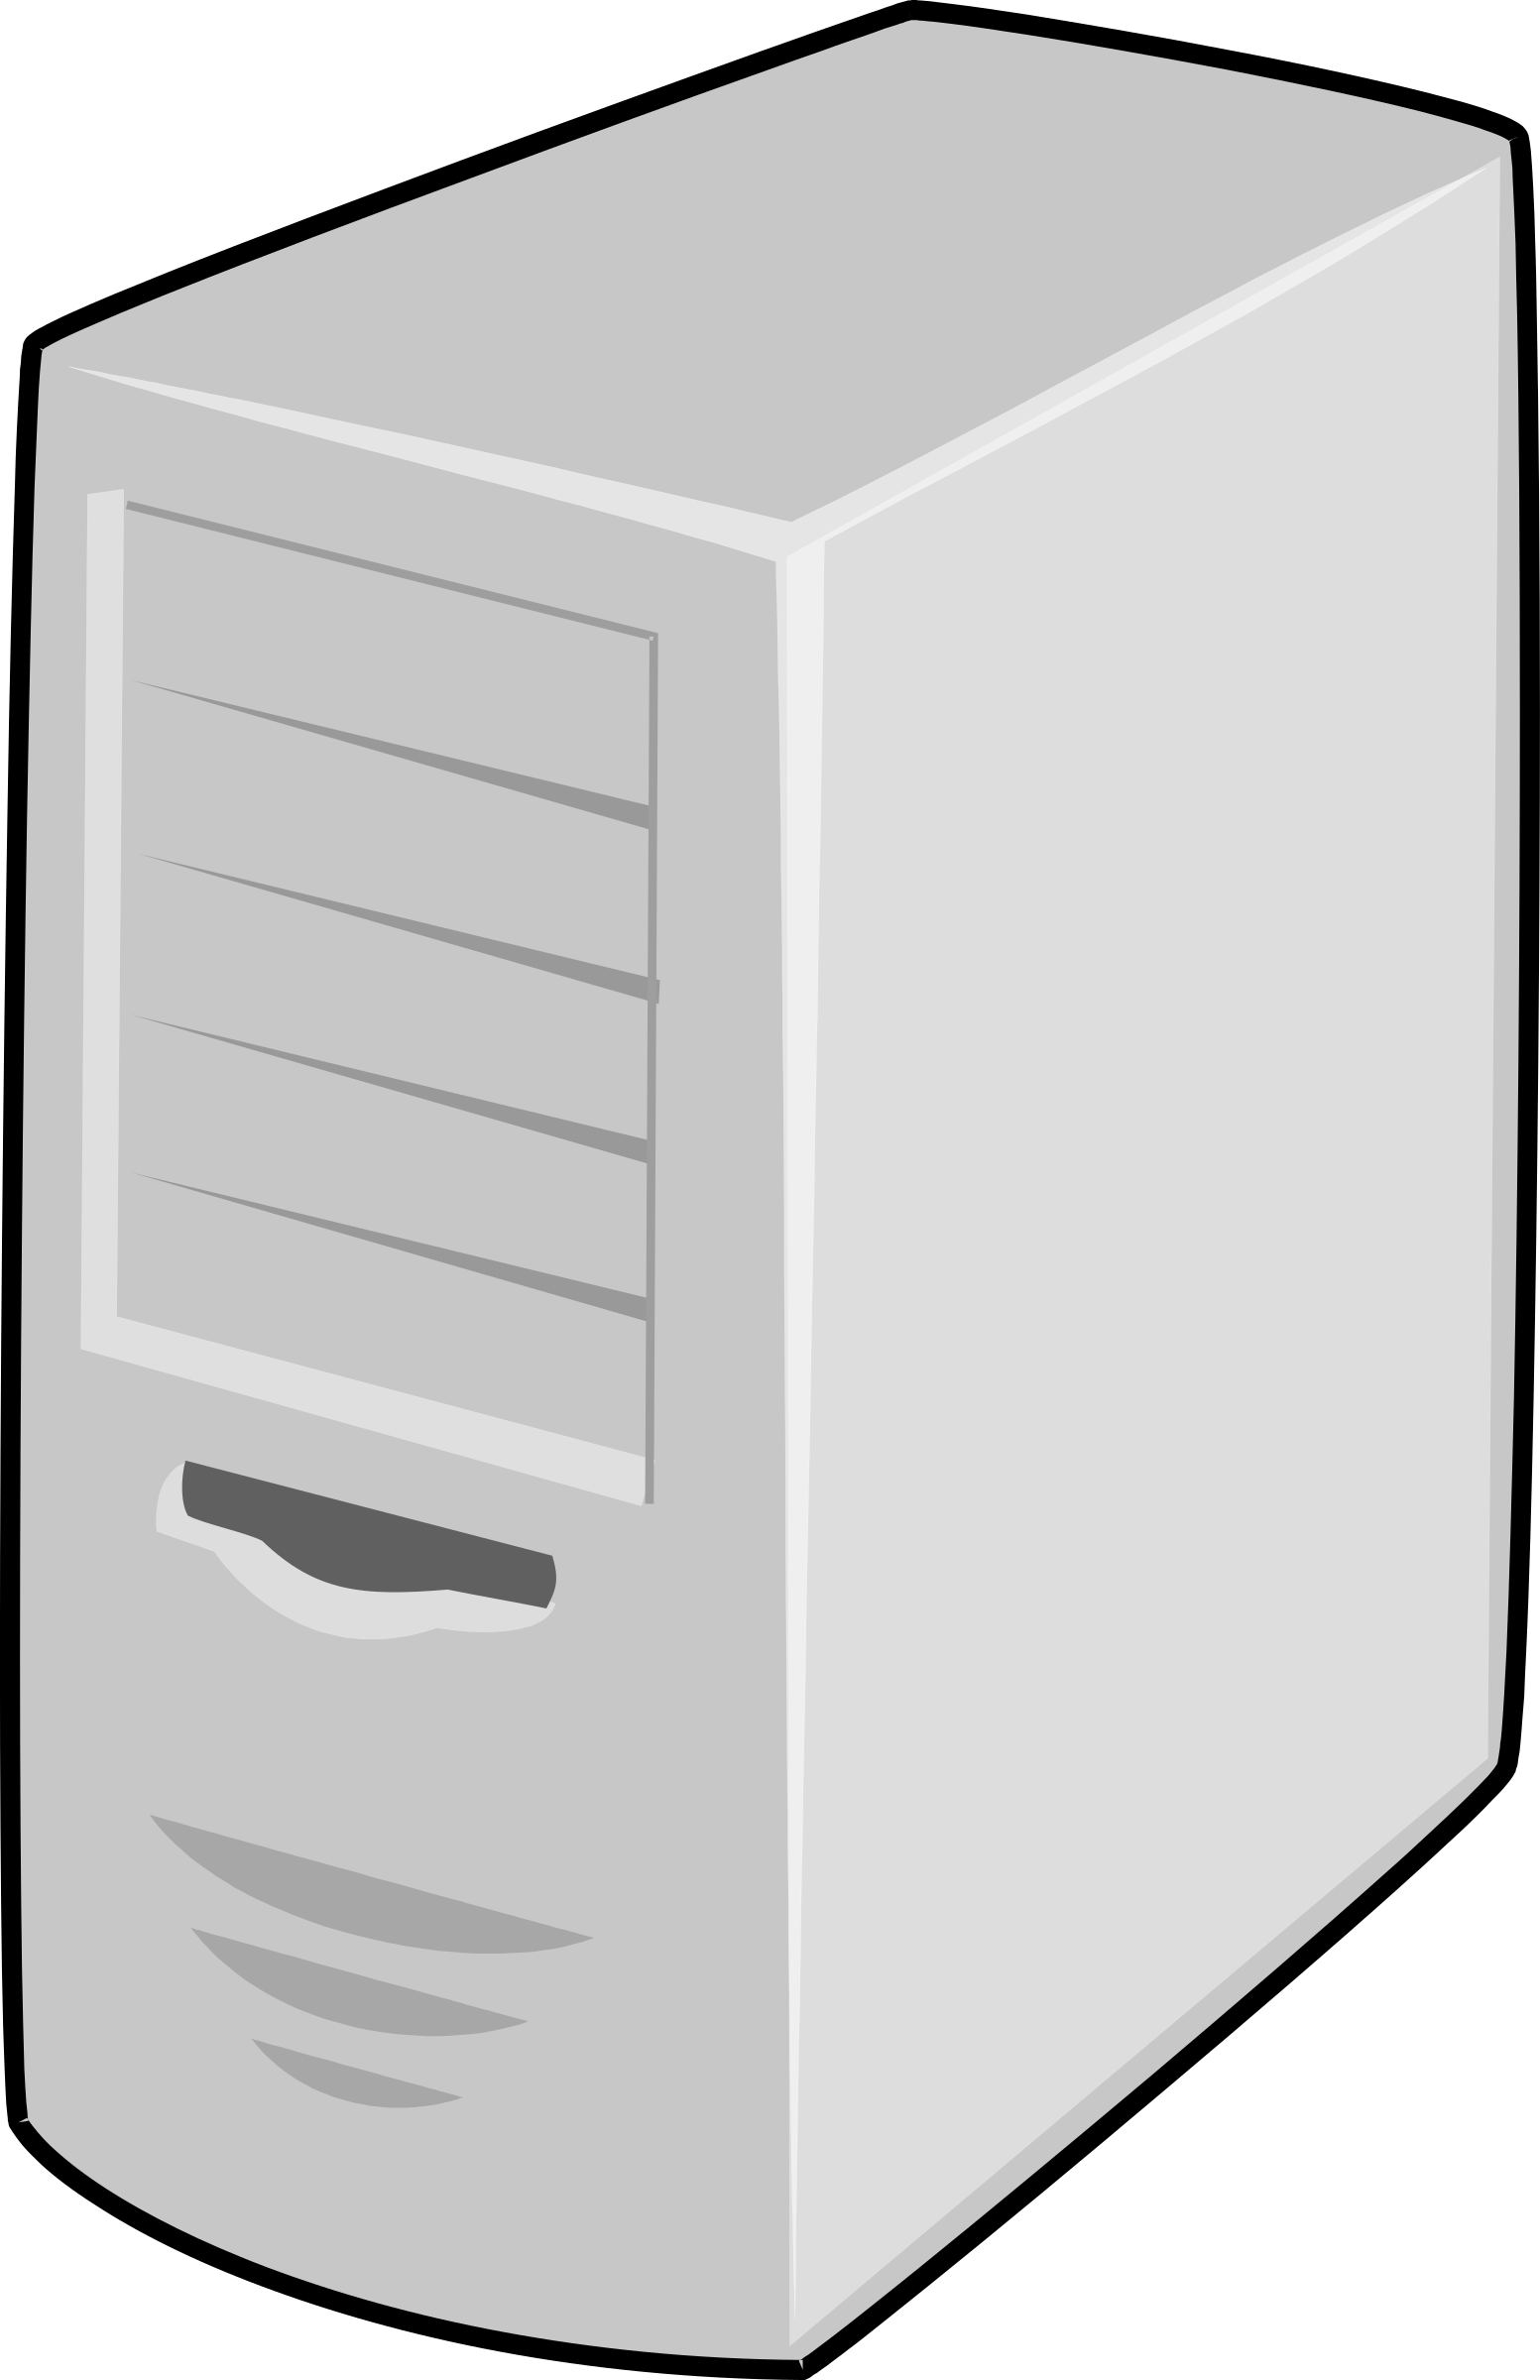 Server Picture PNG Image - Server PNG